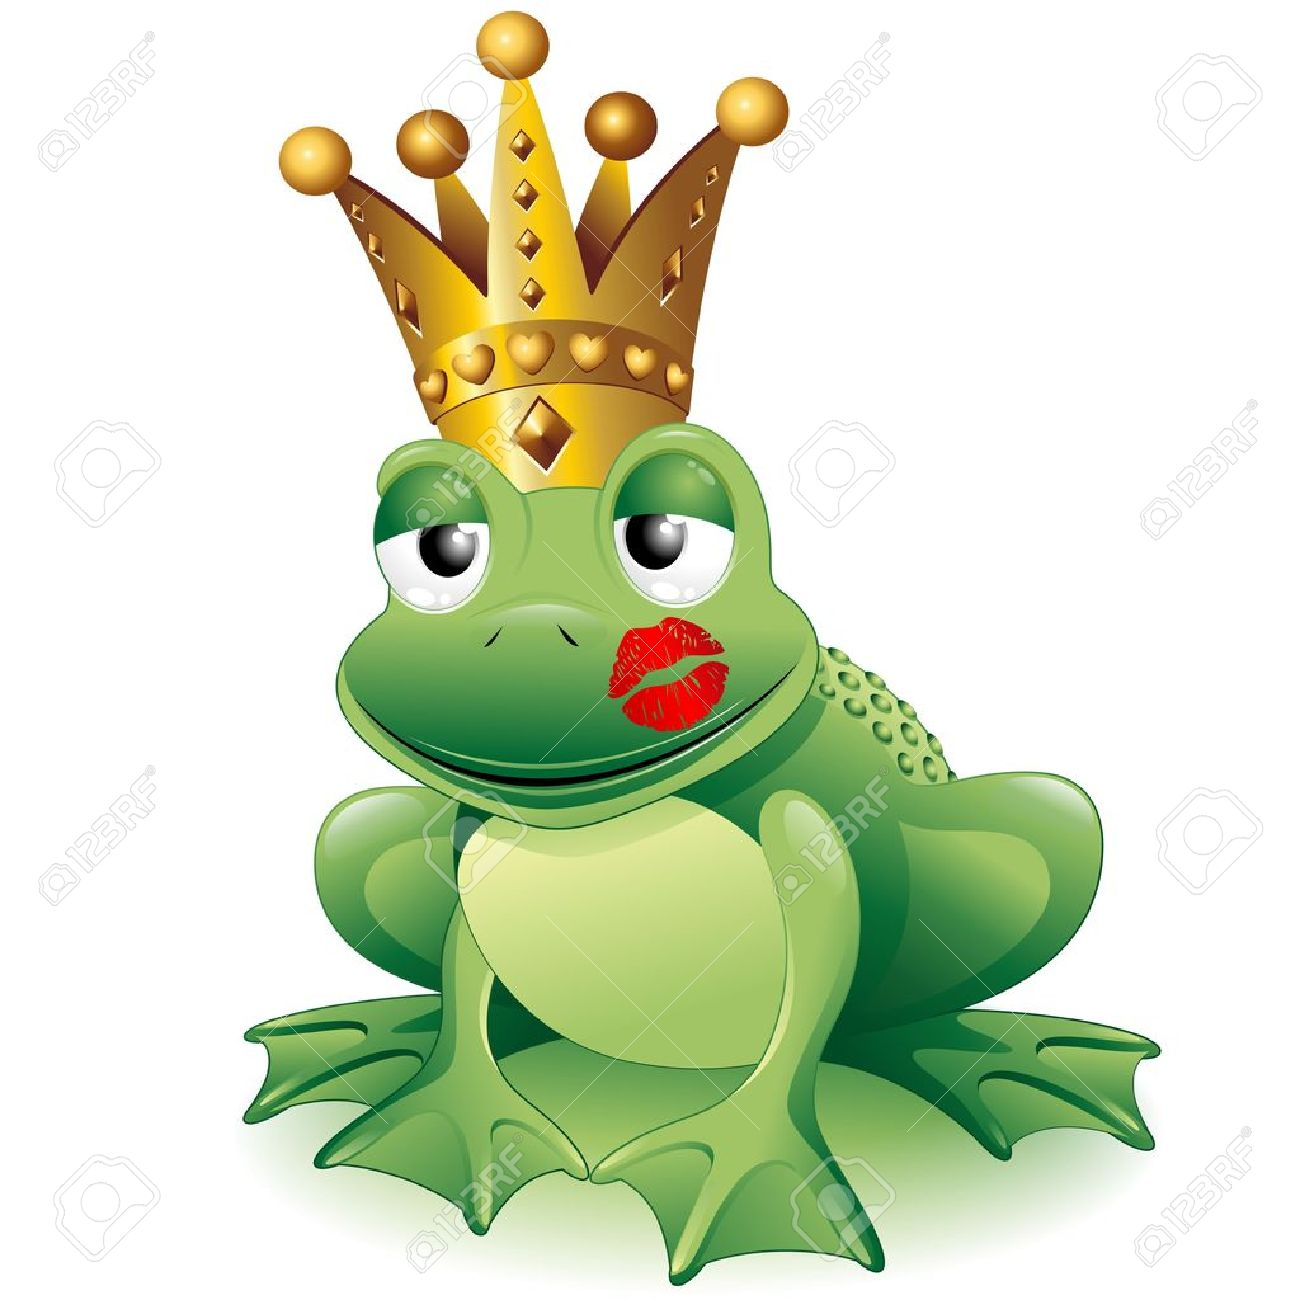 hight resolution of 1300x1300 prince frog cartoon clip art with princess kiss royalty free